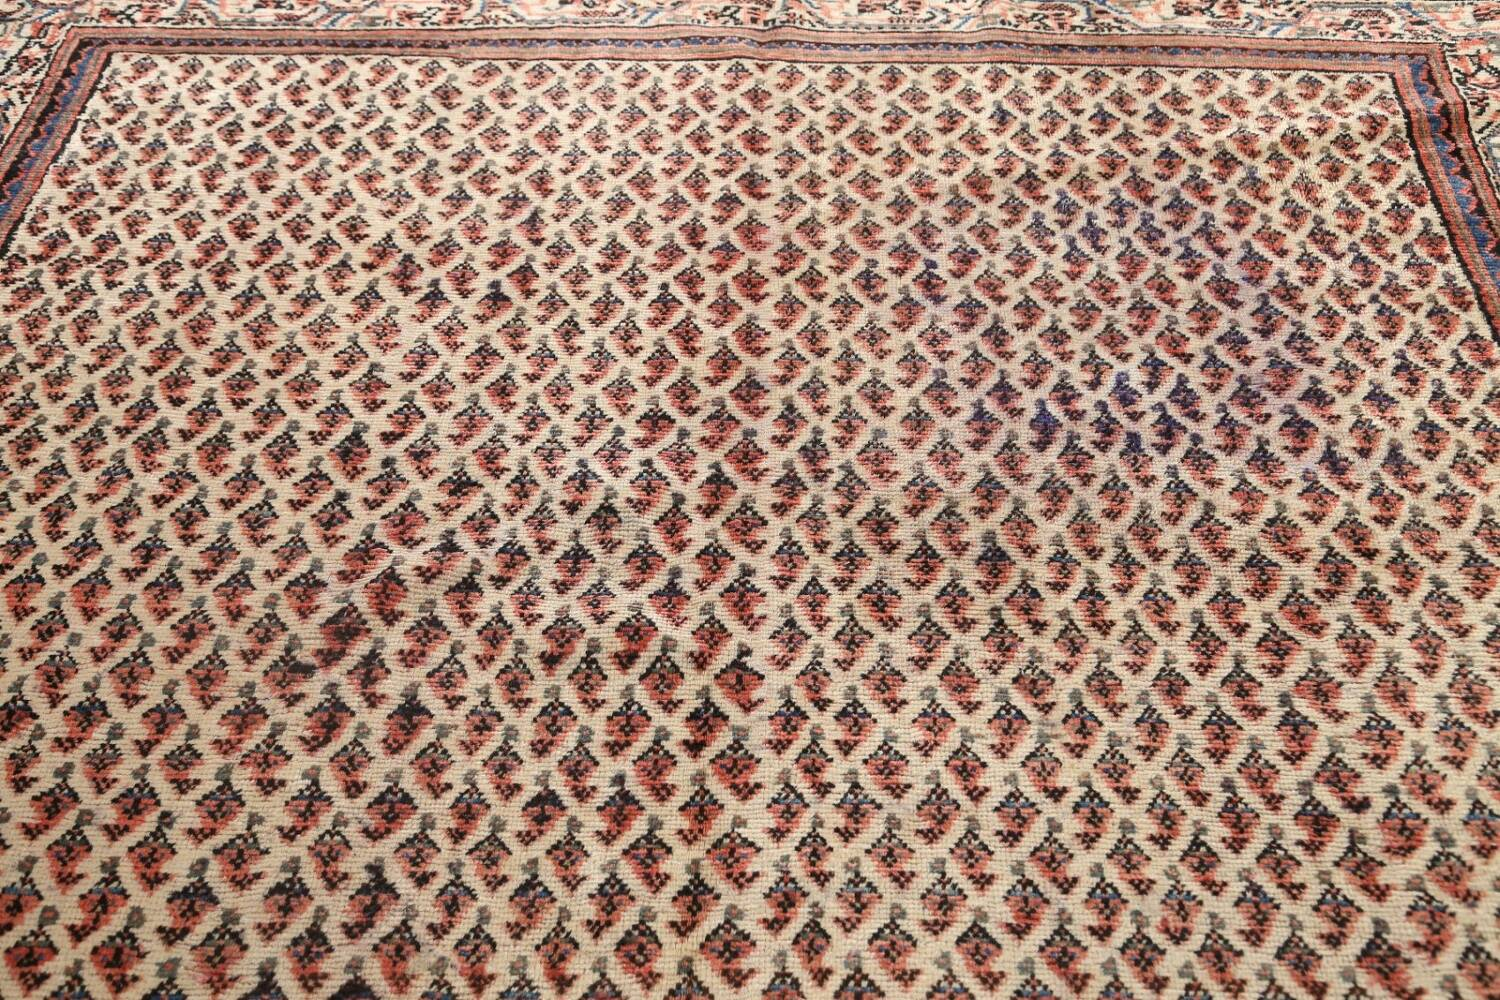 All-Over Boteh Botemir Persian Area Rug 7x11 image 11